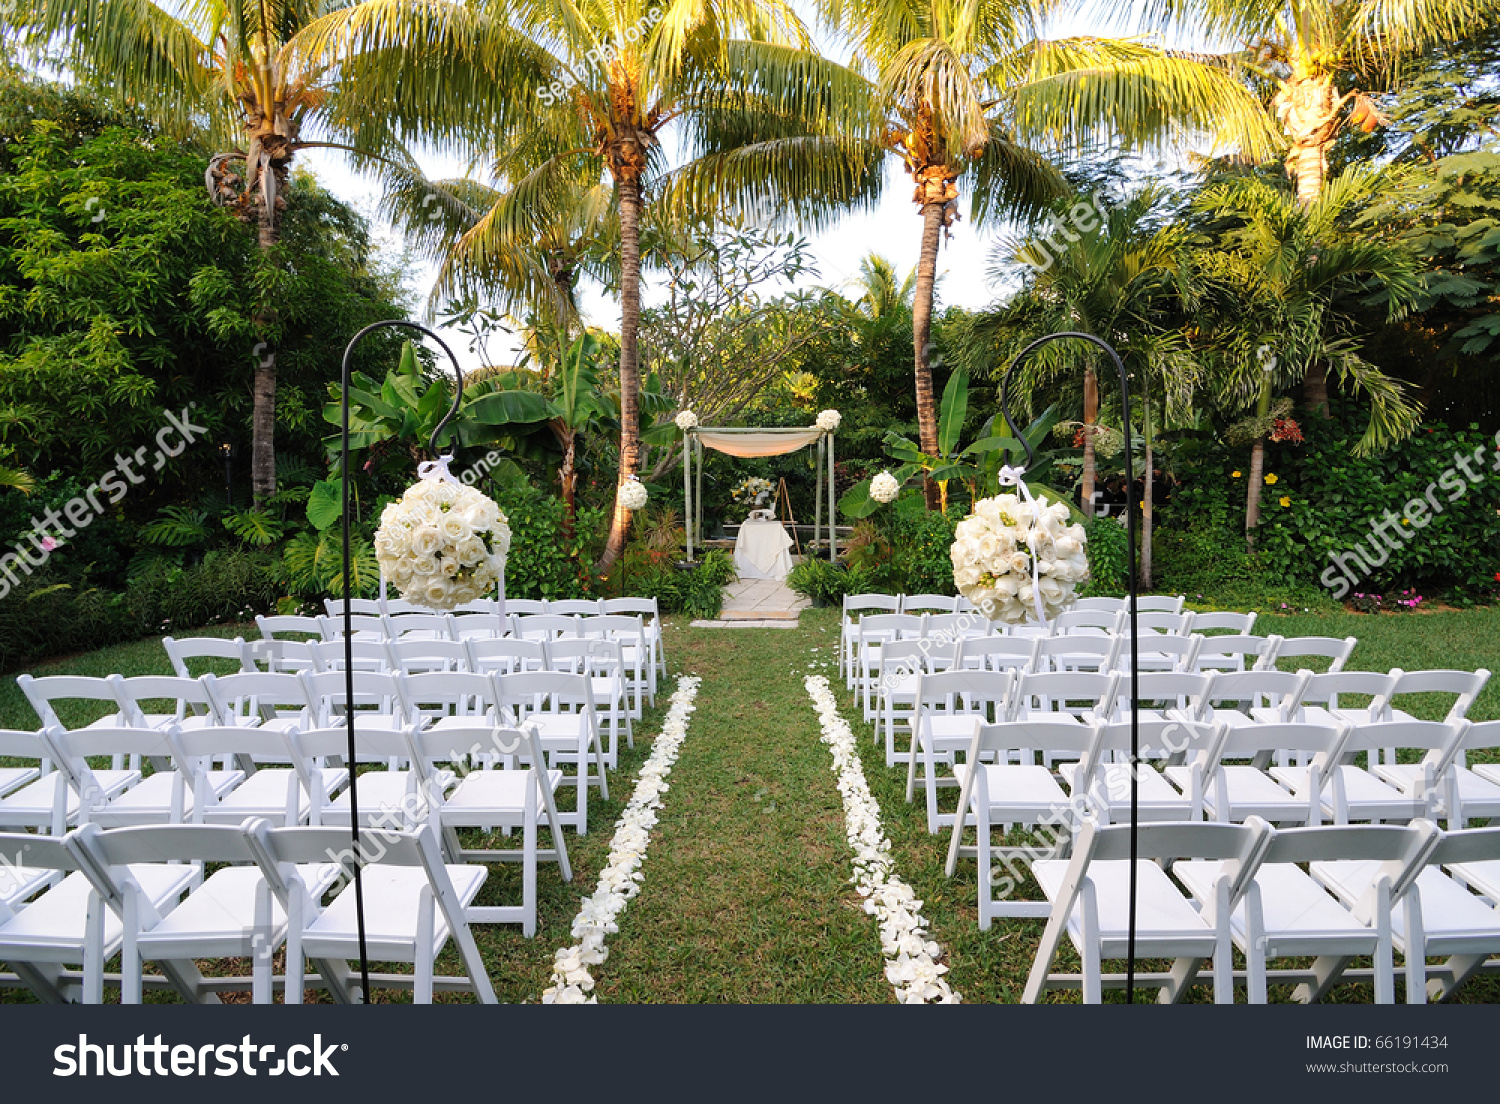 Wedding ceremony chair - A Flower Bouquet With Roses In Front Of Rows Of Chairs At A Wedding Ceremony